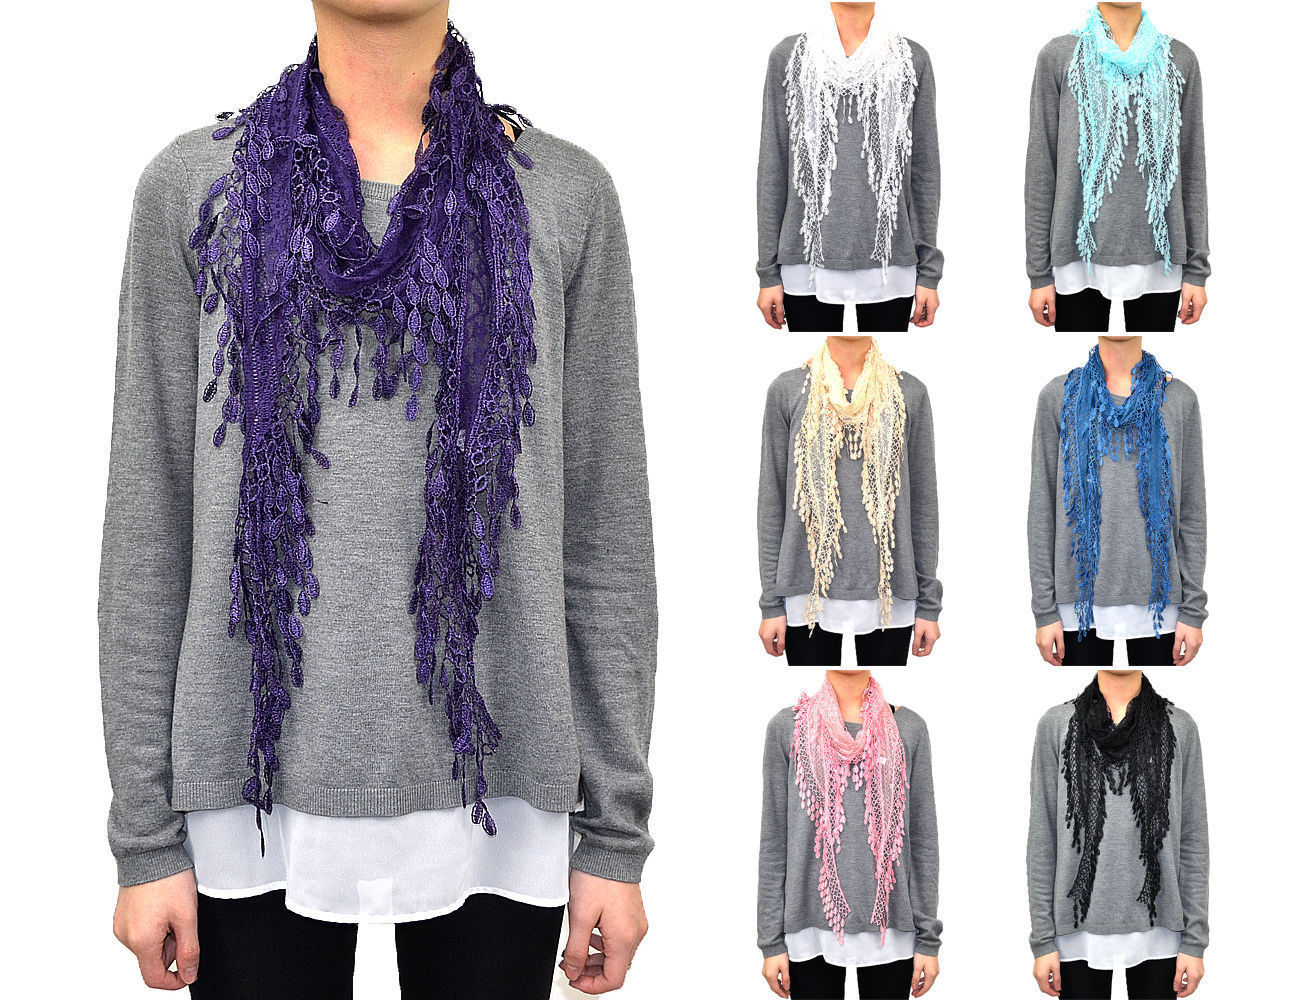 Primary image for 12 PCs Wholesale Women's Melon Seed Fringe Lace Scarf Embroidery Tassel Sheer